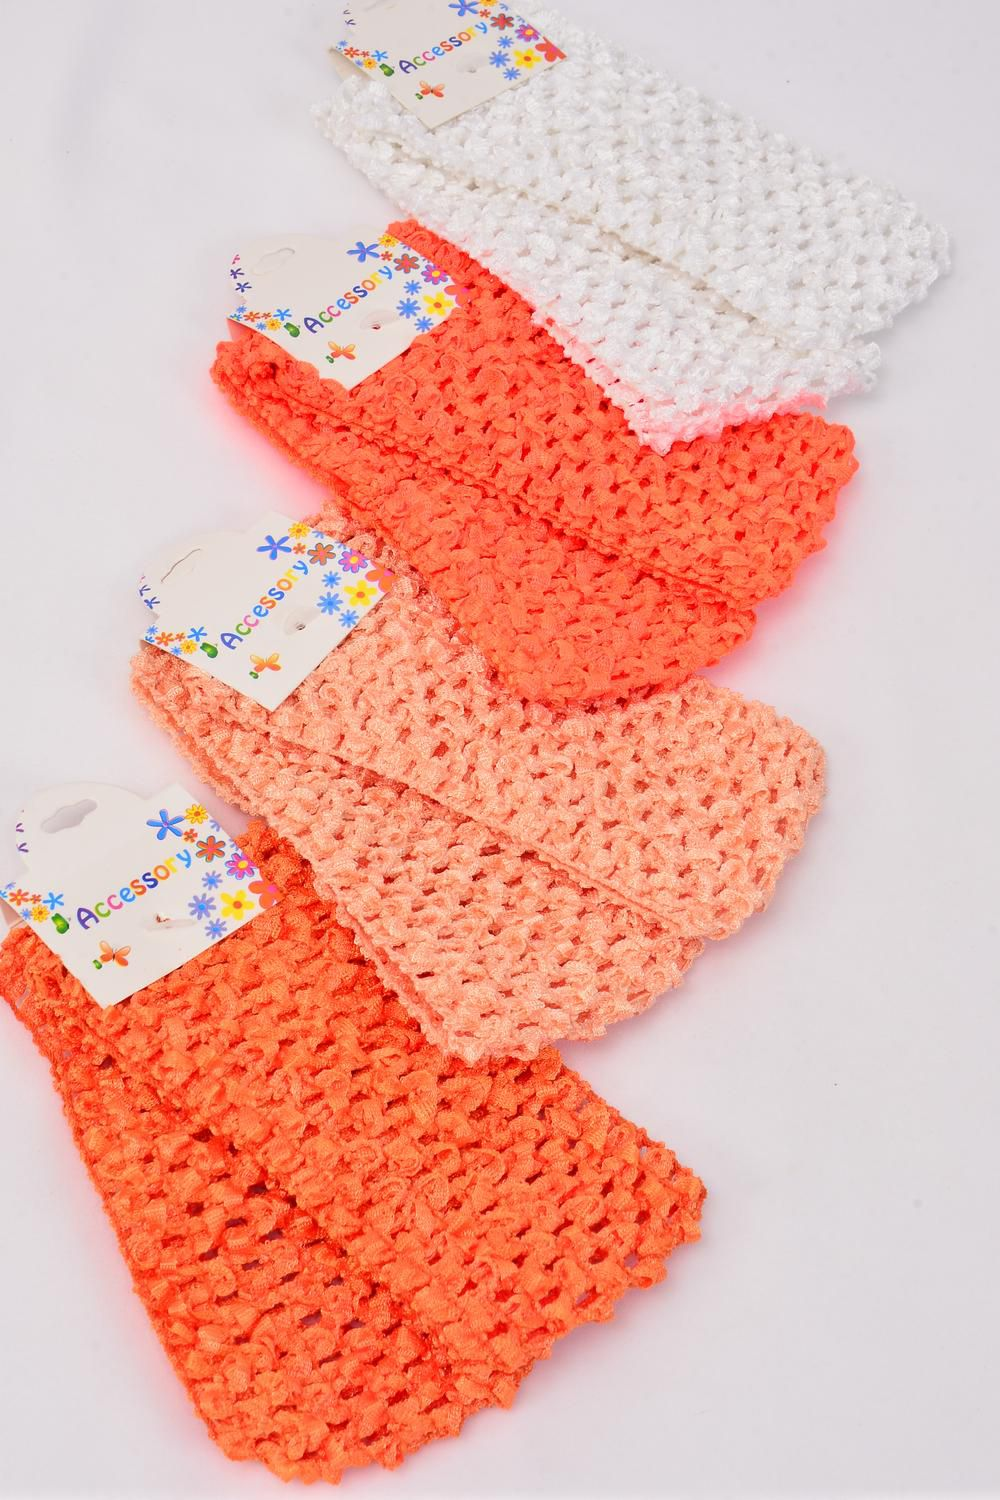 "Ballerina Headband 24 pcs Stretch Orange Mix/DZ **Orange Mix** Stretch,Size-2.75""x 5.5"" Wide,3 of each Color Asst,Hang tag & UPC Code,each card has 2 pcs,12 card=Dozen"